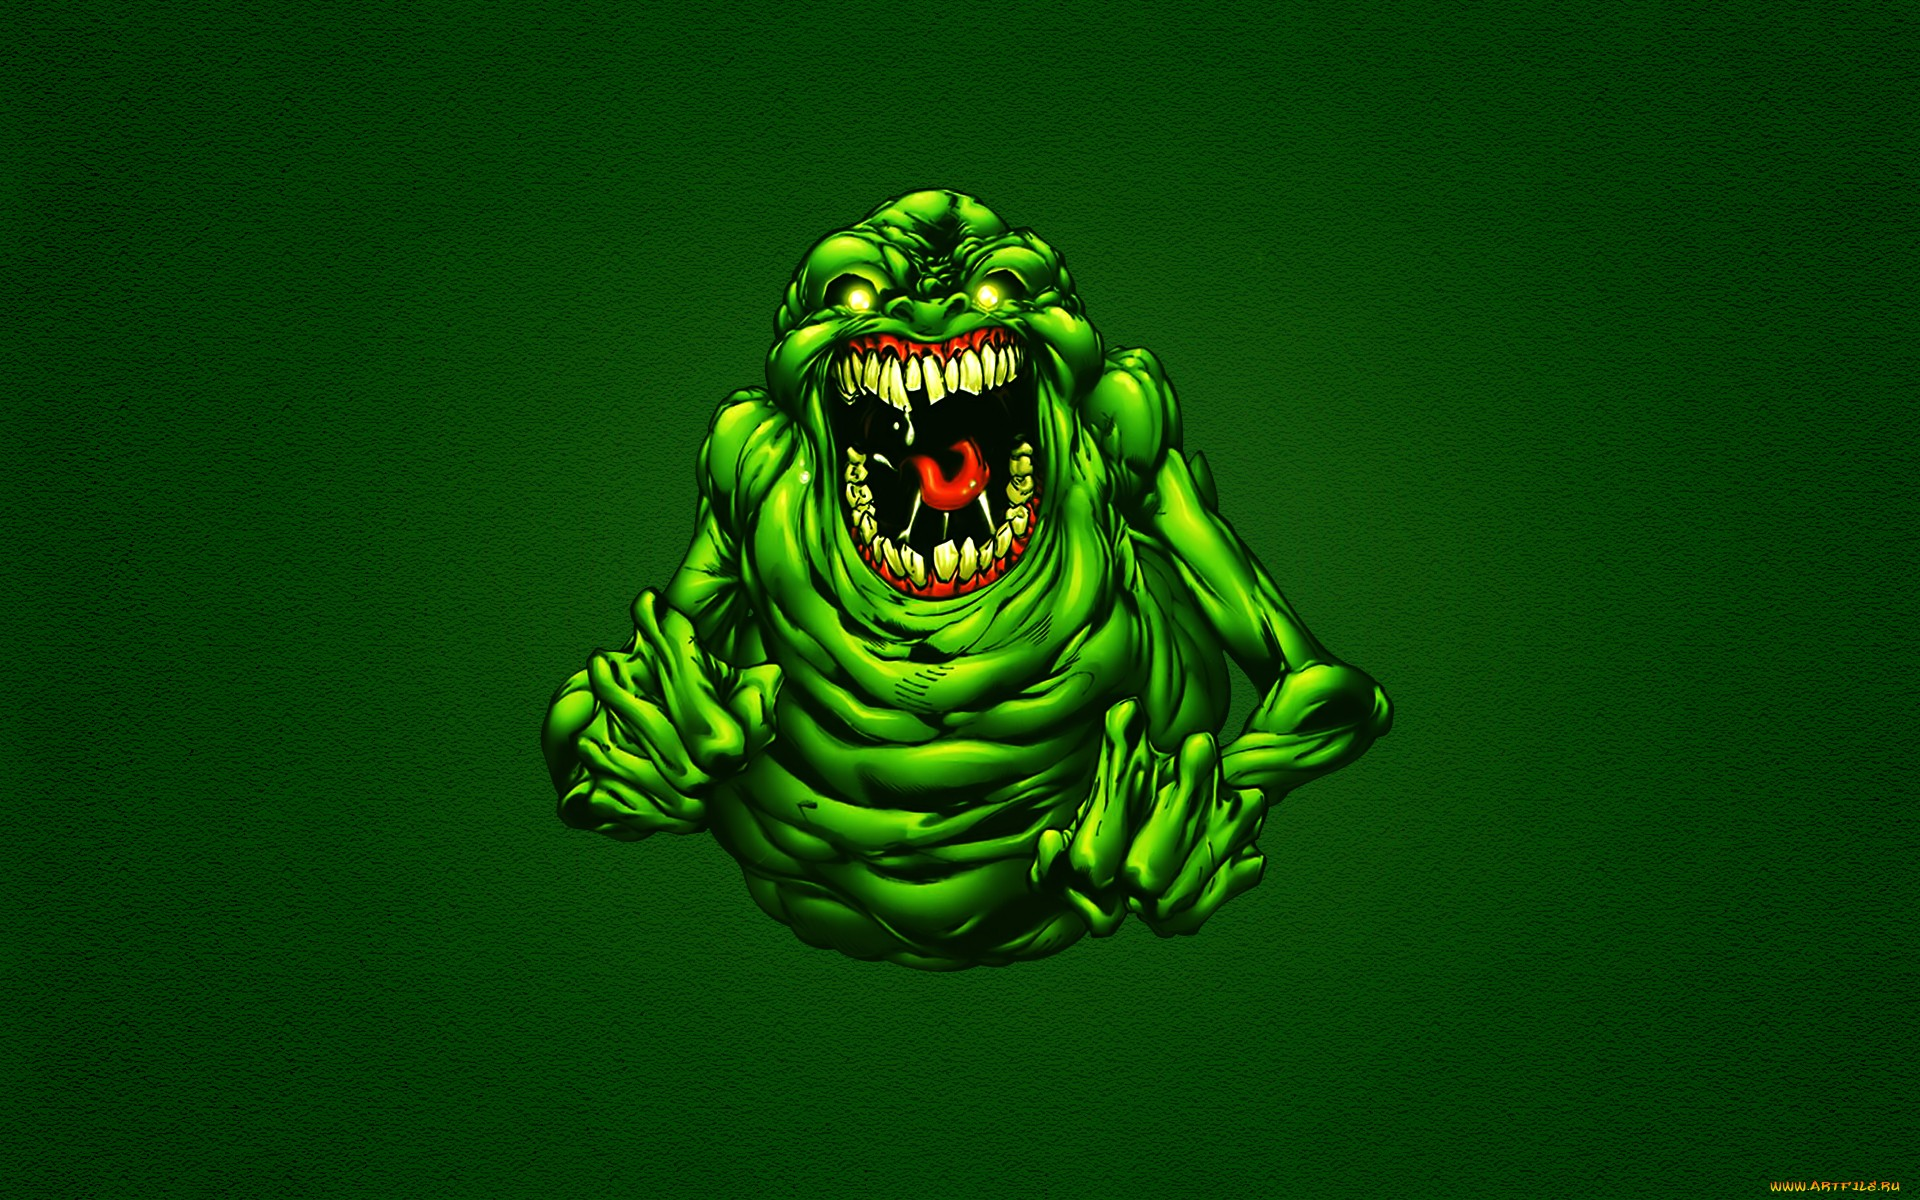 ghostbusters full hd wallpaper and background image | 1920x1200 | id